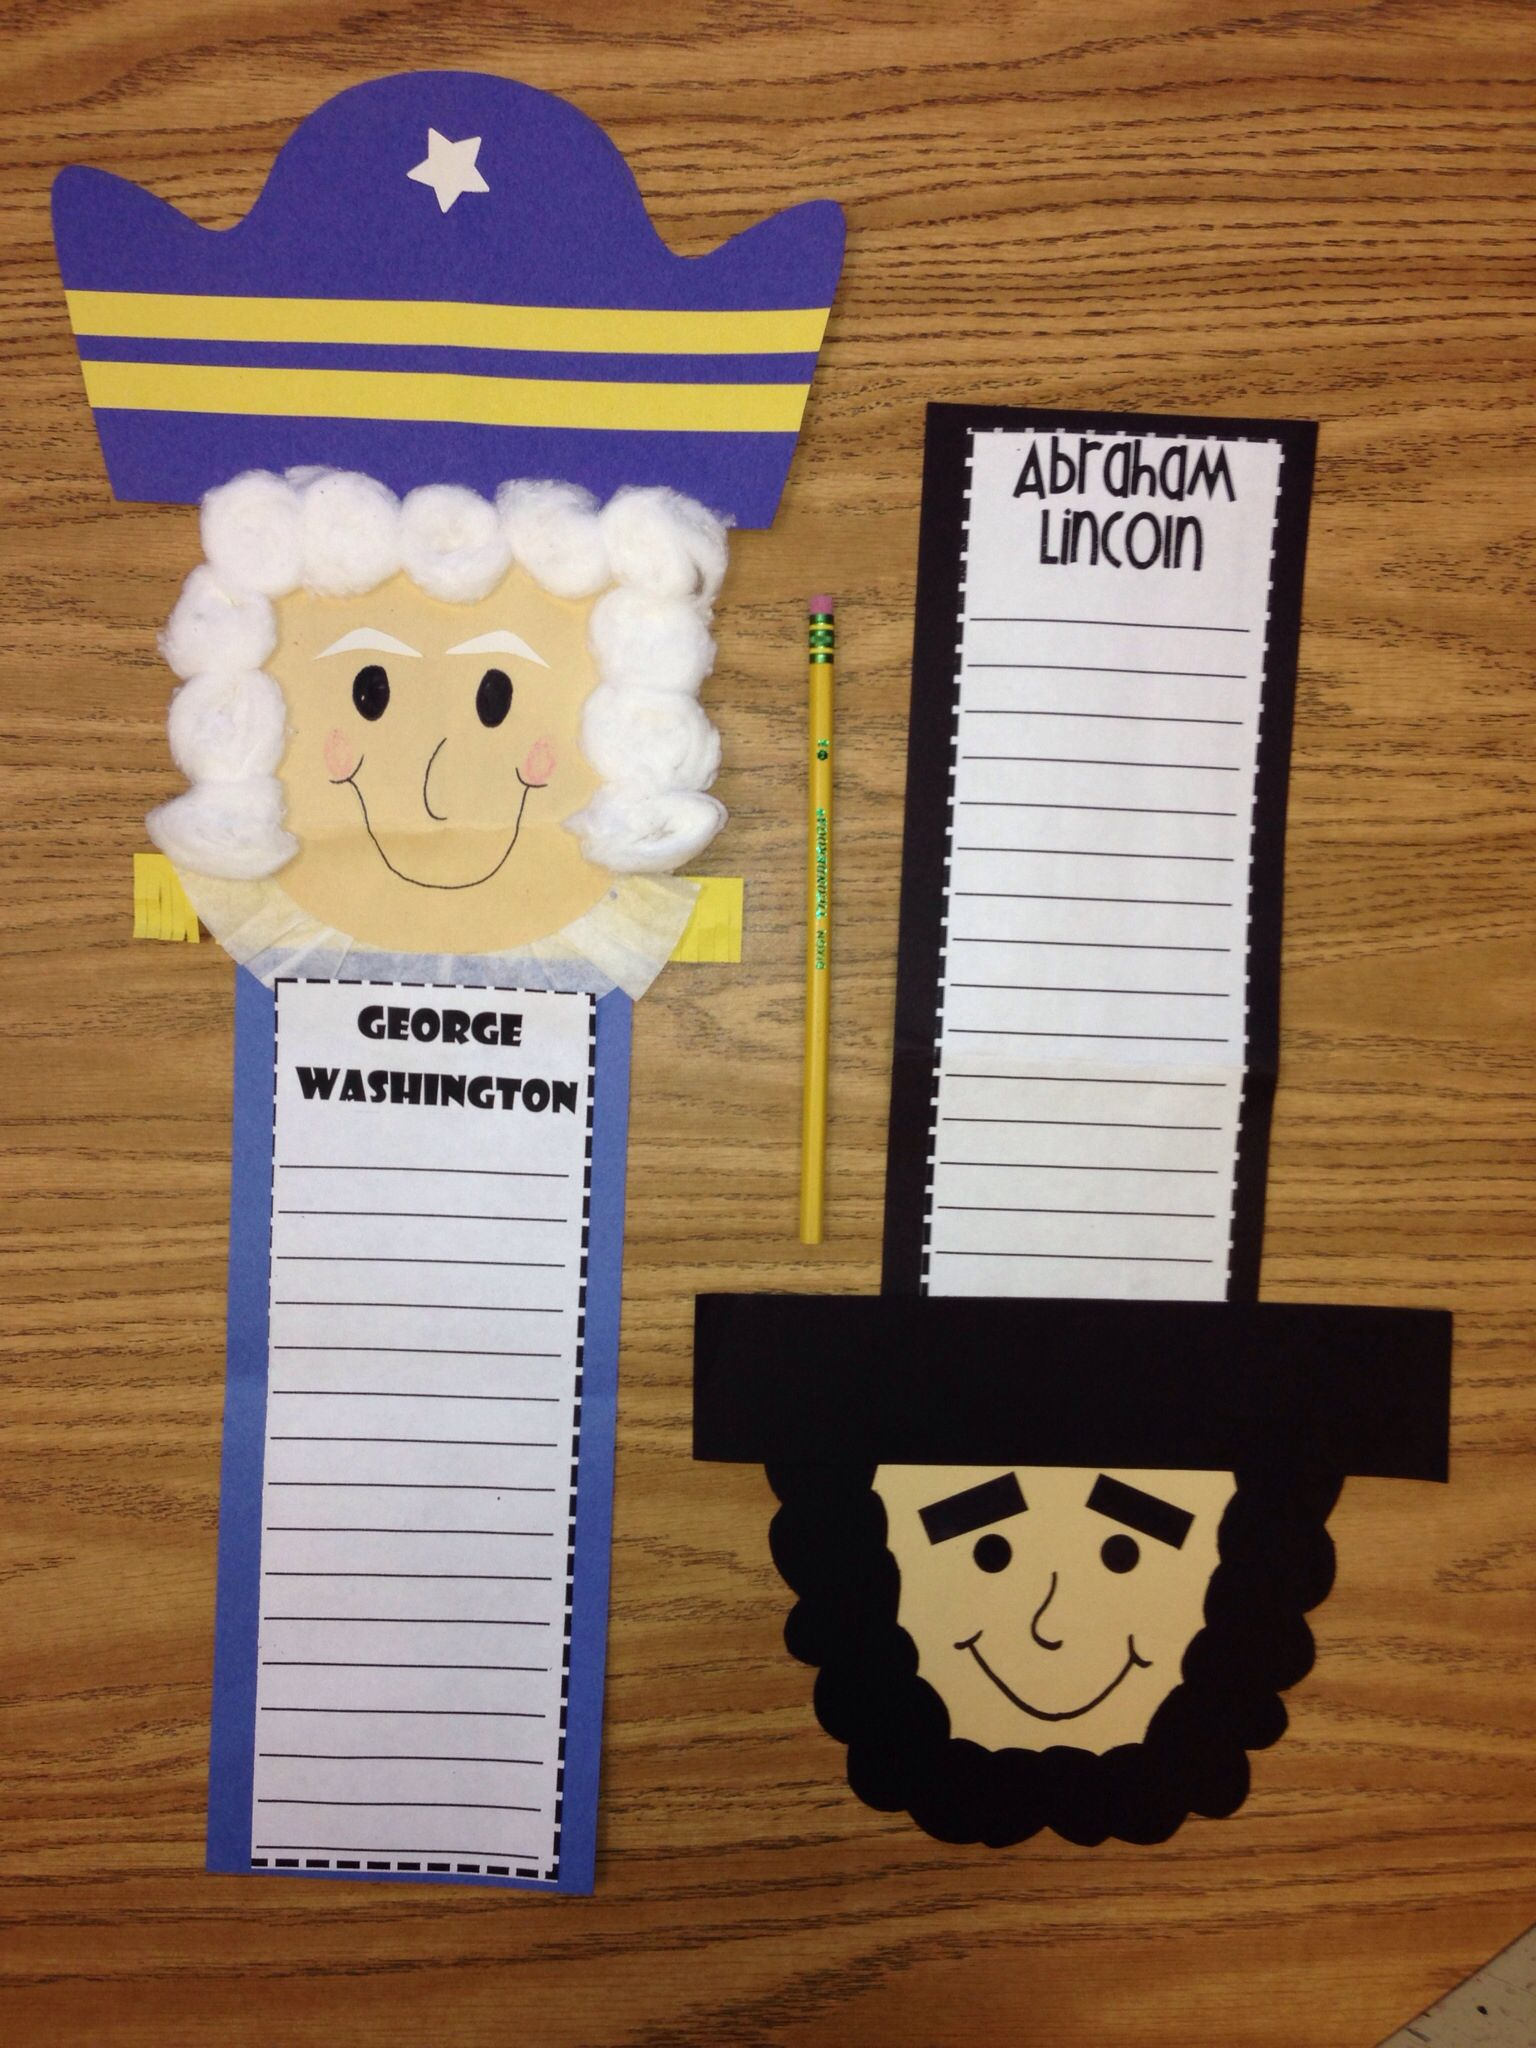 Abe Lincoln Crafts Activities